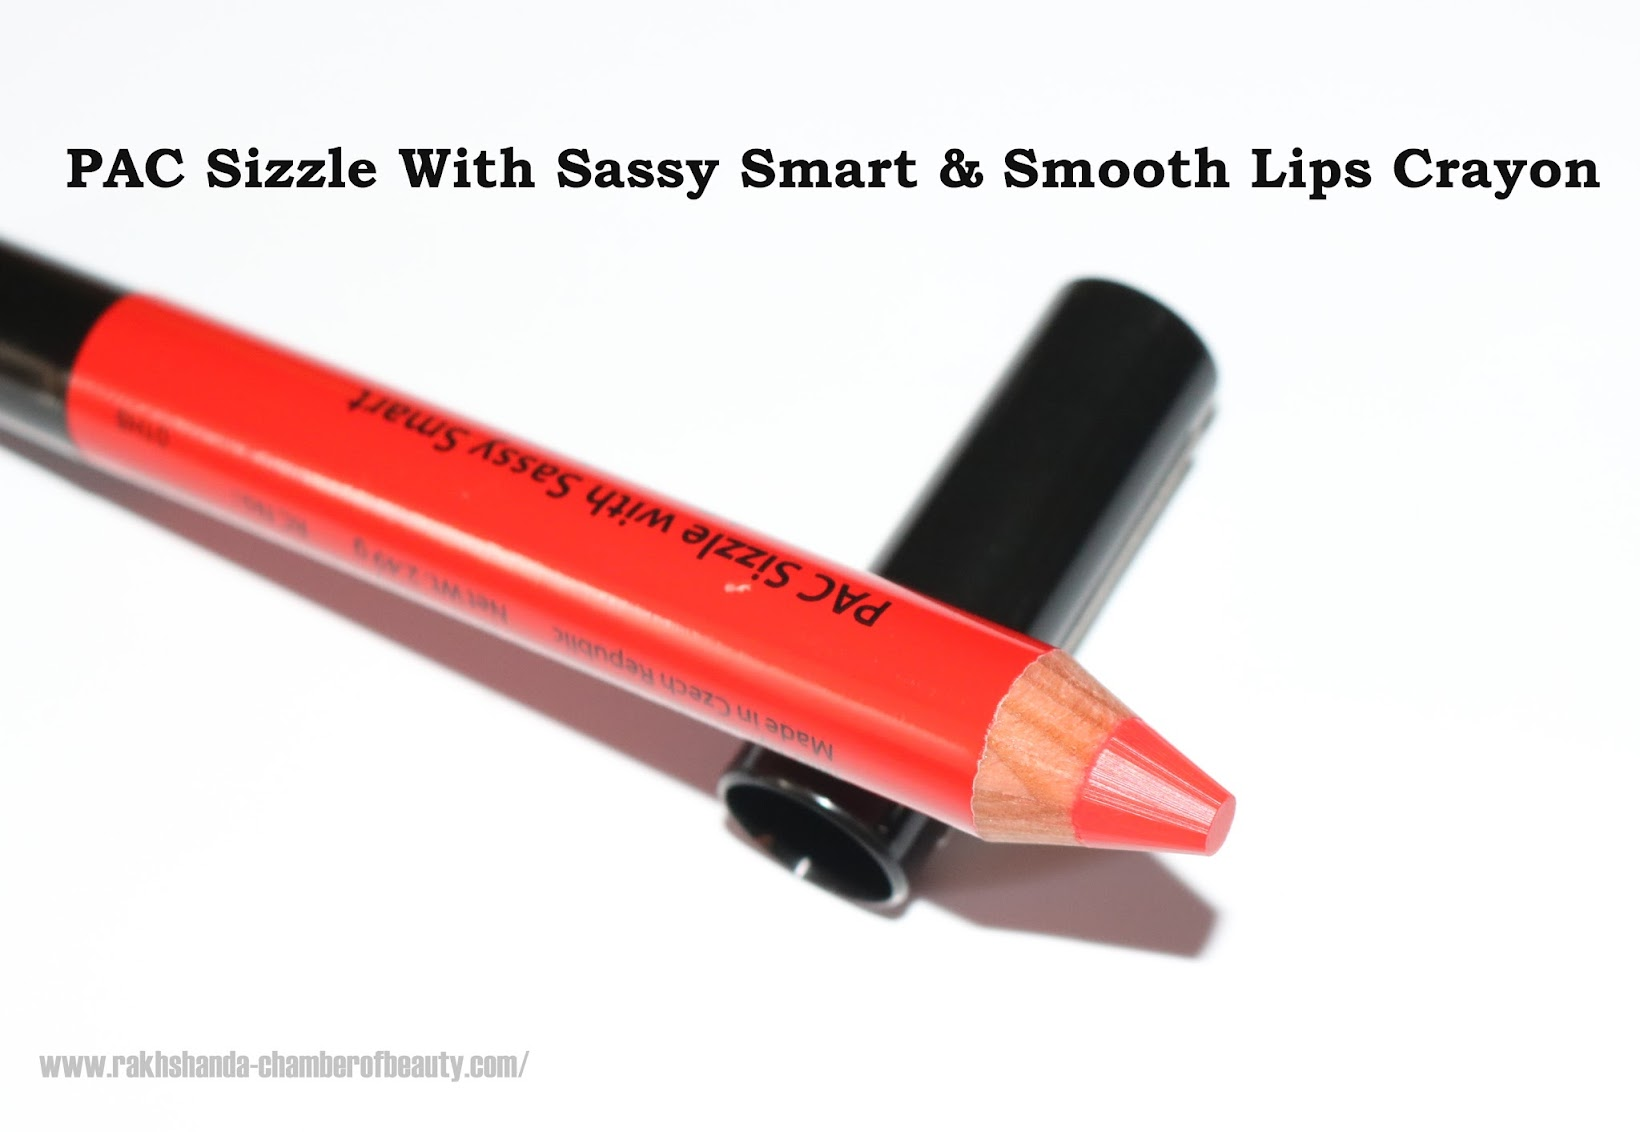 Pac Cosmetics Sizzle With Smart & Sassy Lips-Love Seeker Review Swatches & More, PAC Cosmetics India, Bright red lipcolours in India, Indian beauty blogger